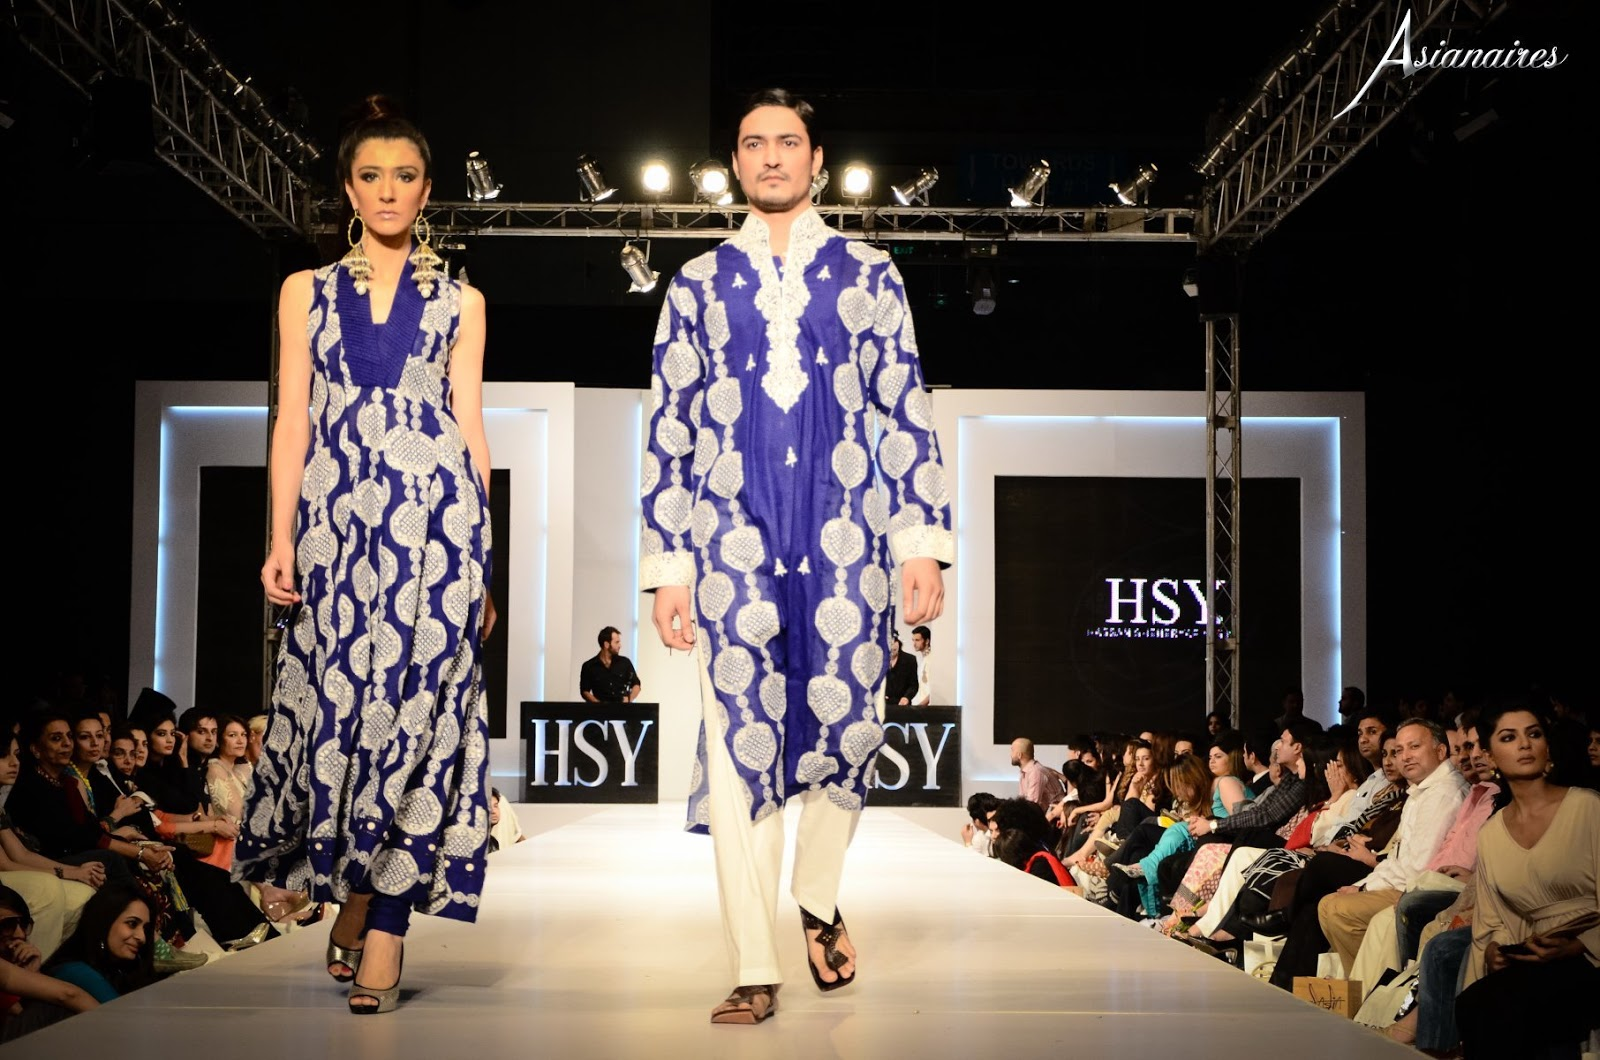 PFDC-Sunsilk Fashion Week A/W 11 - HSY - Asian Wedding Ideas